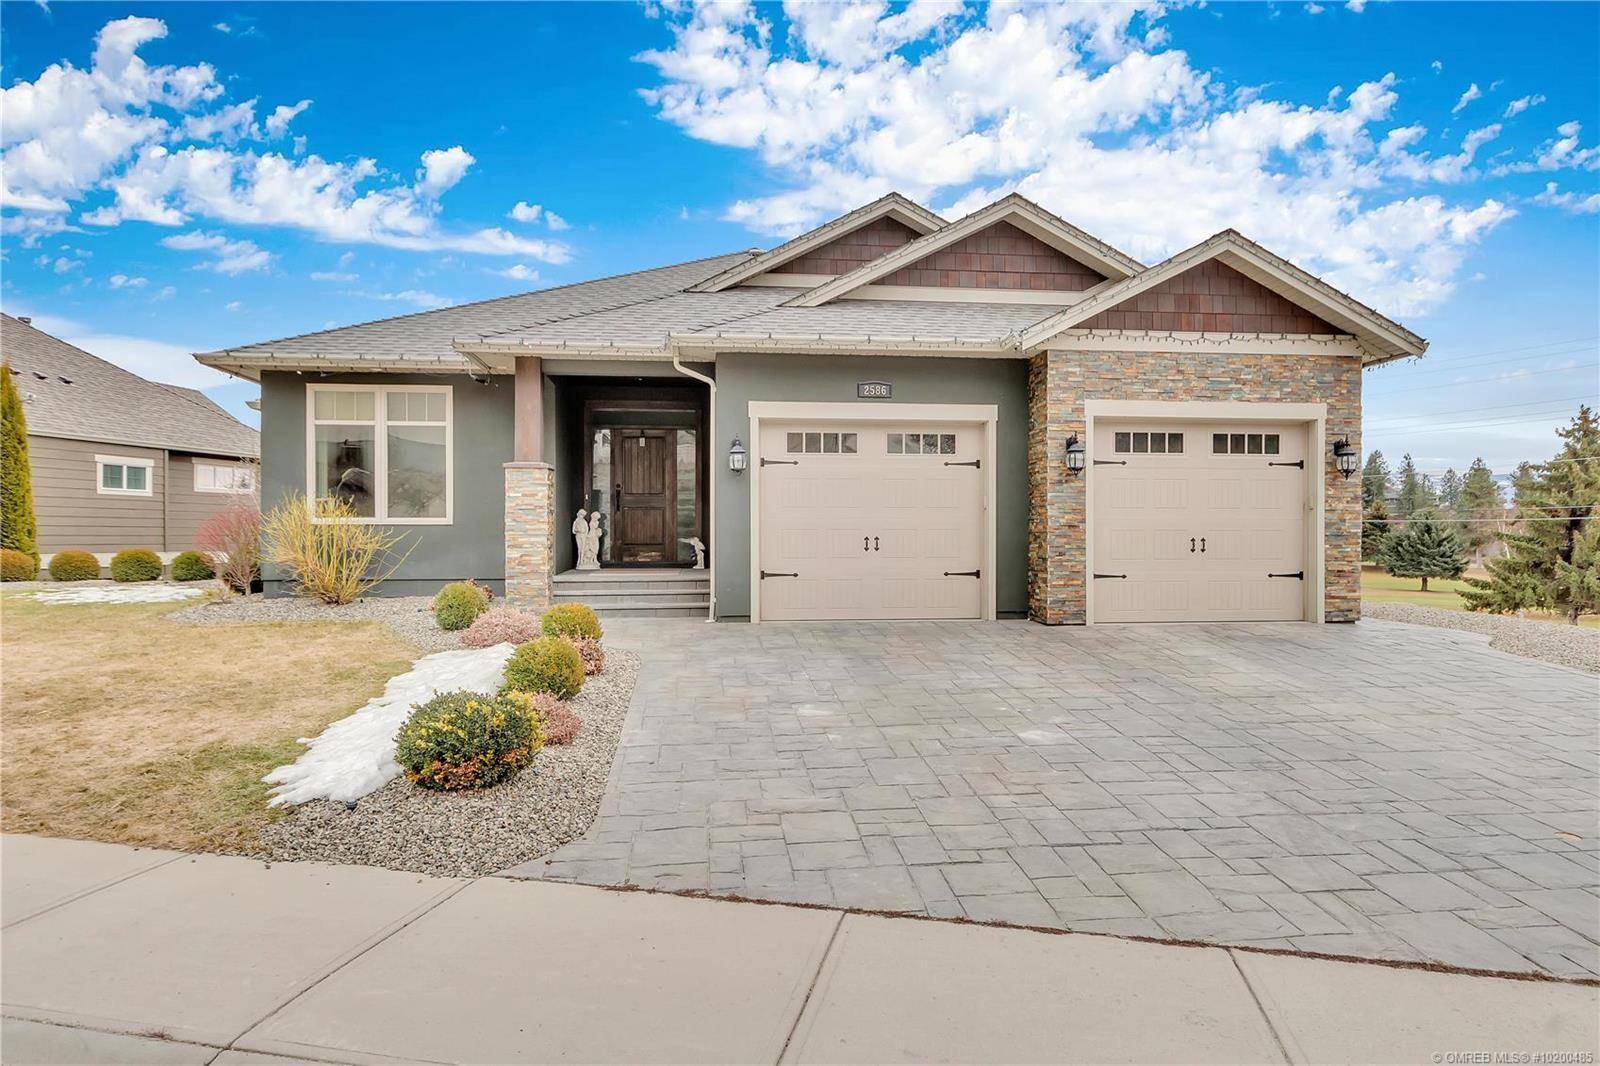 House for sale at 2586 Tuscany Dr West Kelowna British Columbia - MLS: 10200485